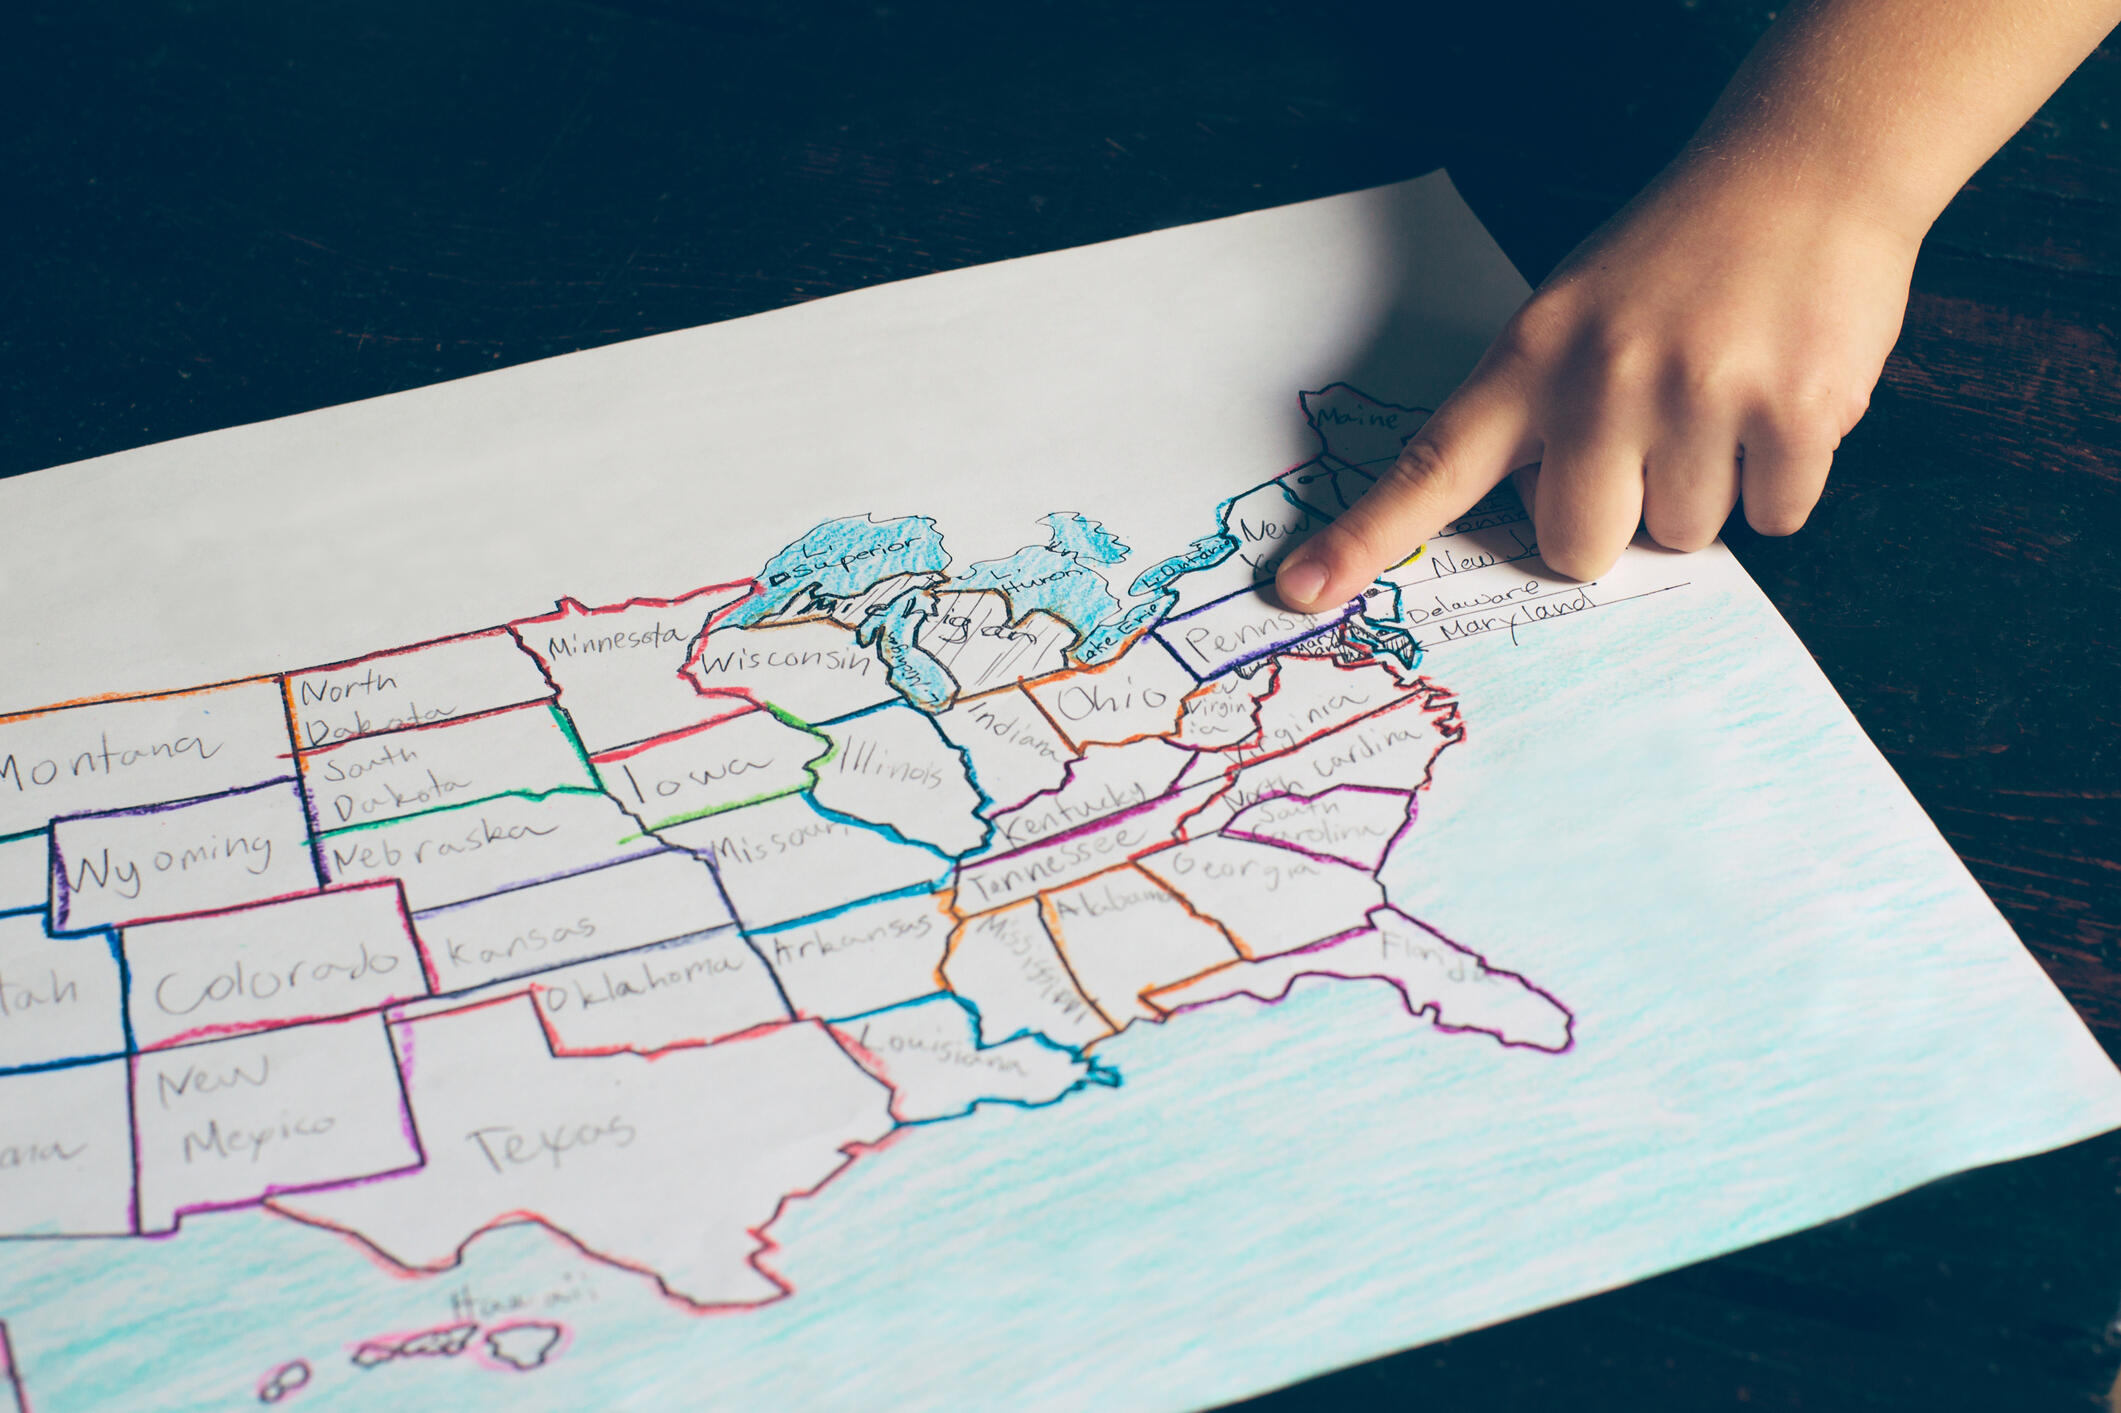 A child's finger pointing to a hand drawn map of the United States of America.